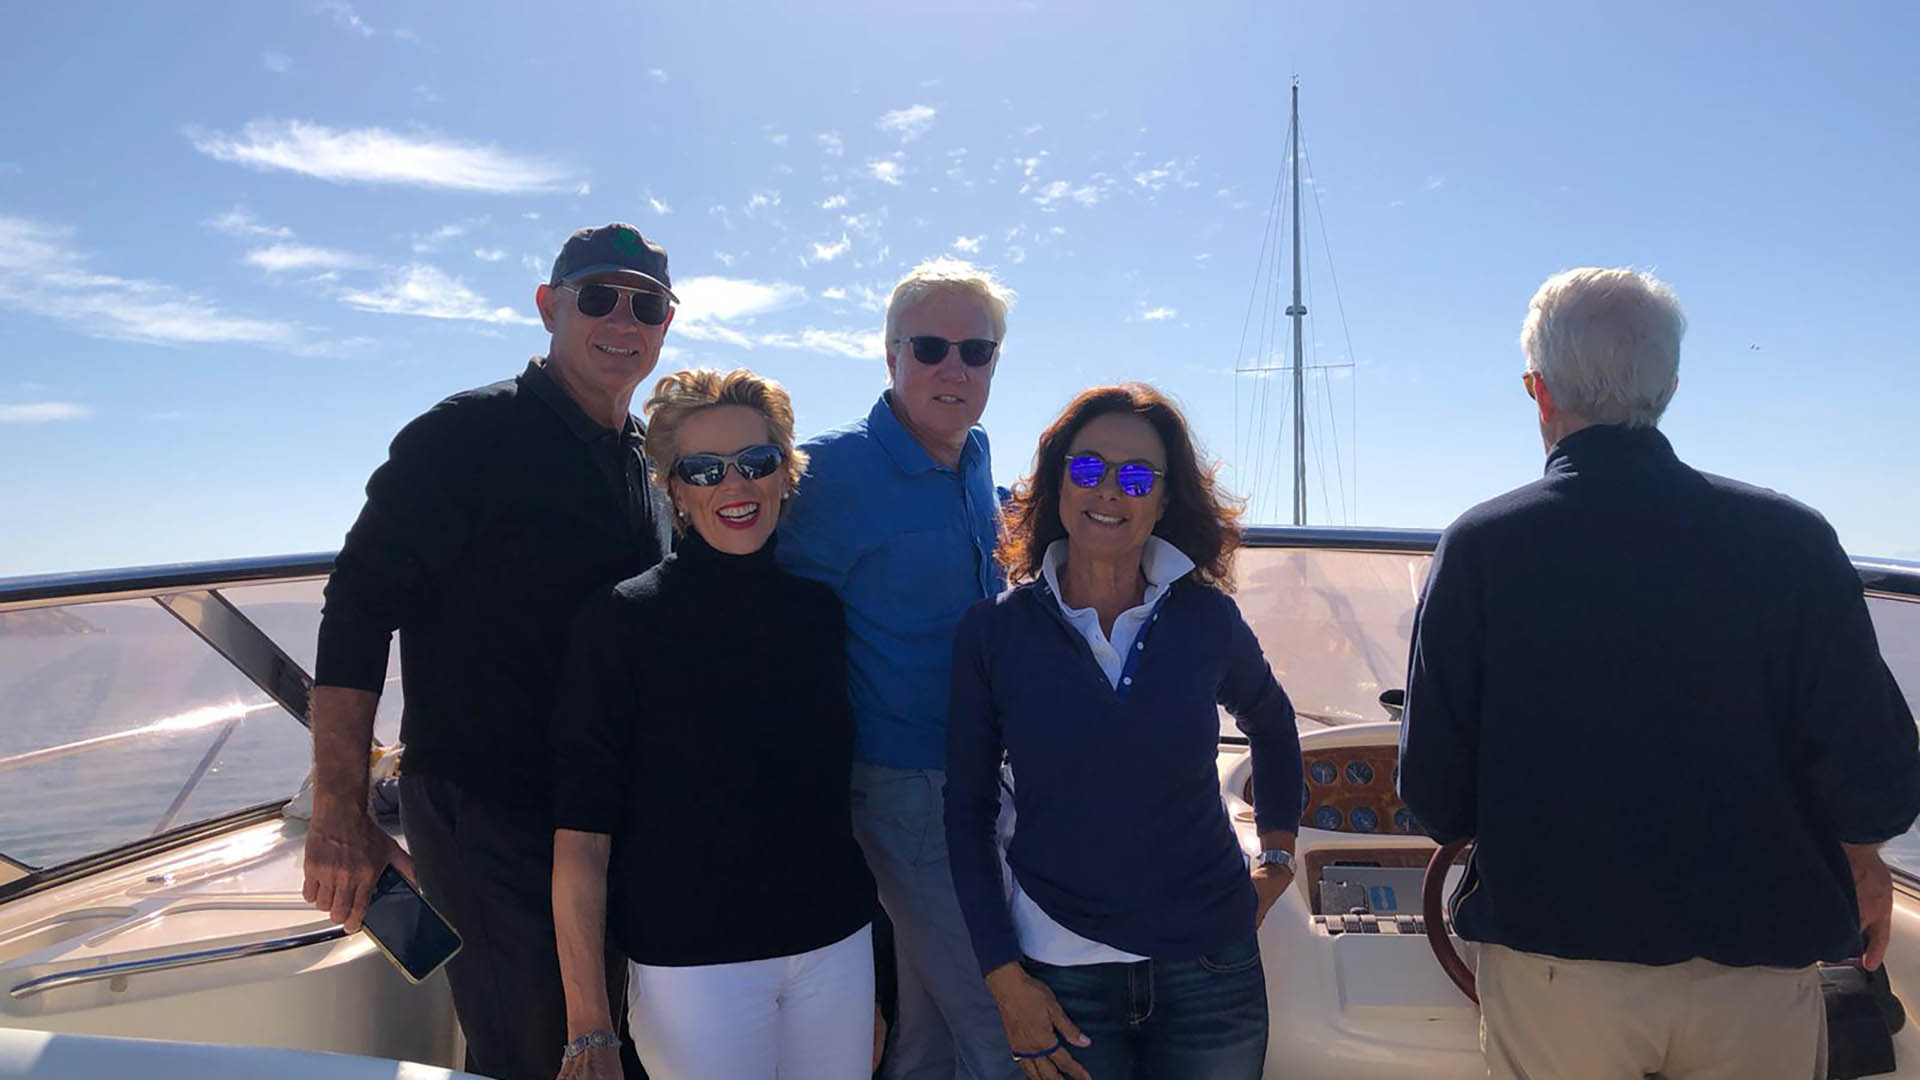 charlie-stephanie-weekend-escapade-from-sotogrande-to-estepona-by-boat